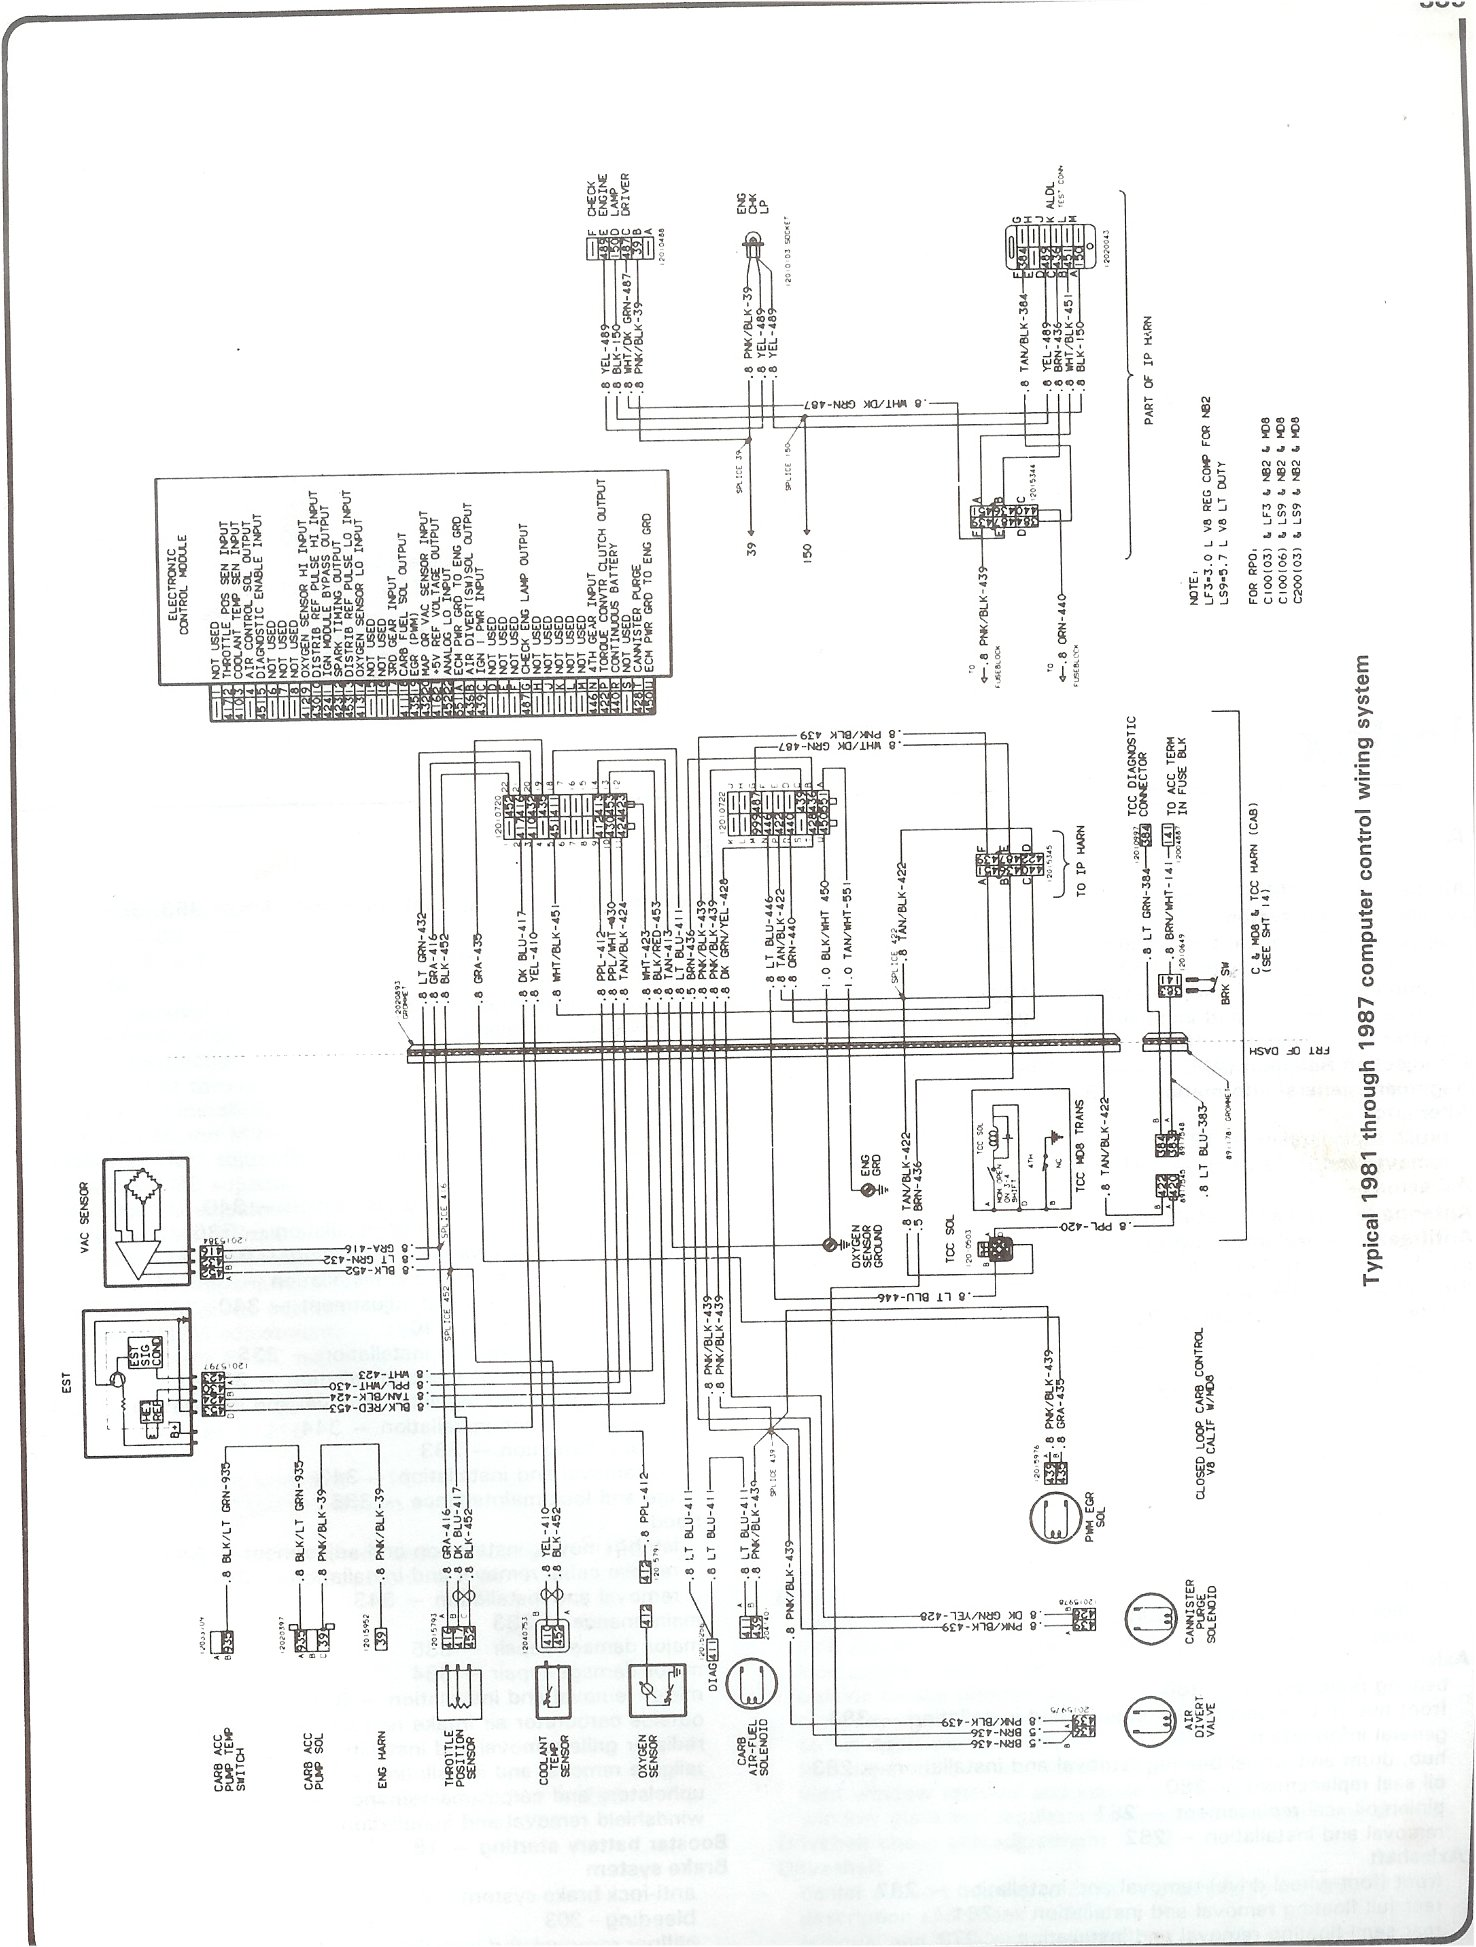 1997 Saturn Fuse Box Diagram Wiring Library 2007 Gmc Truck Speaker Diagrams Complete 73 87 Sierra Batt Hzd